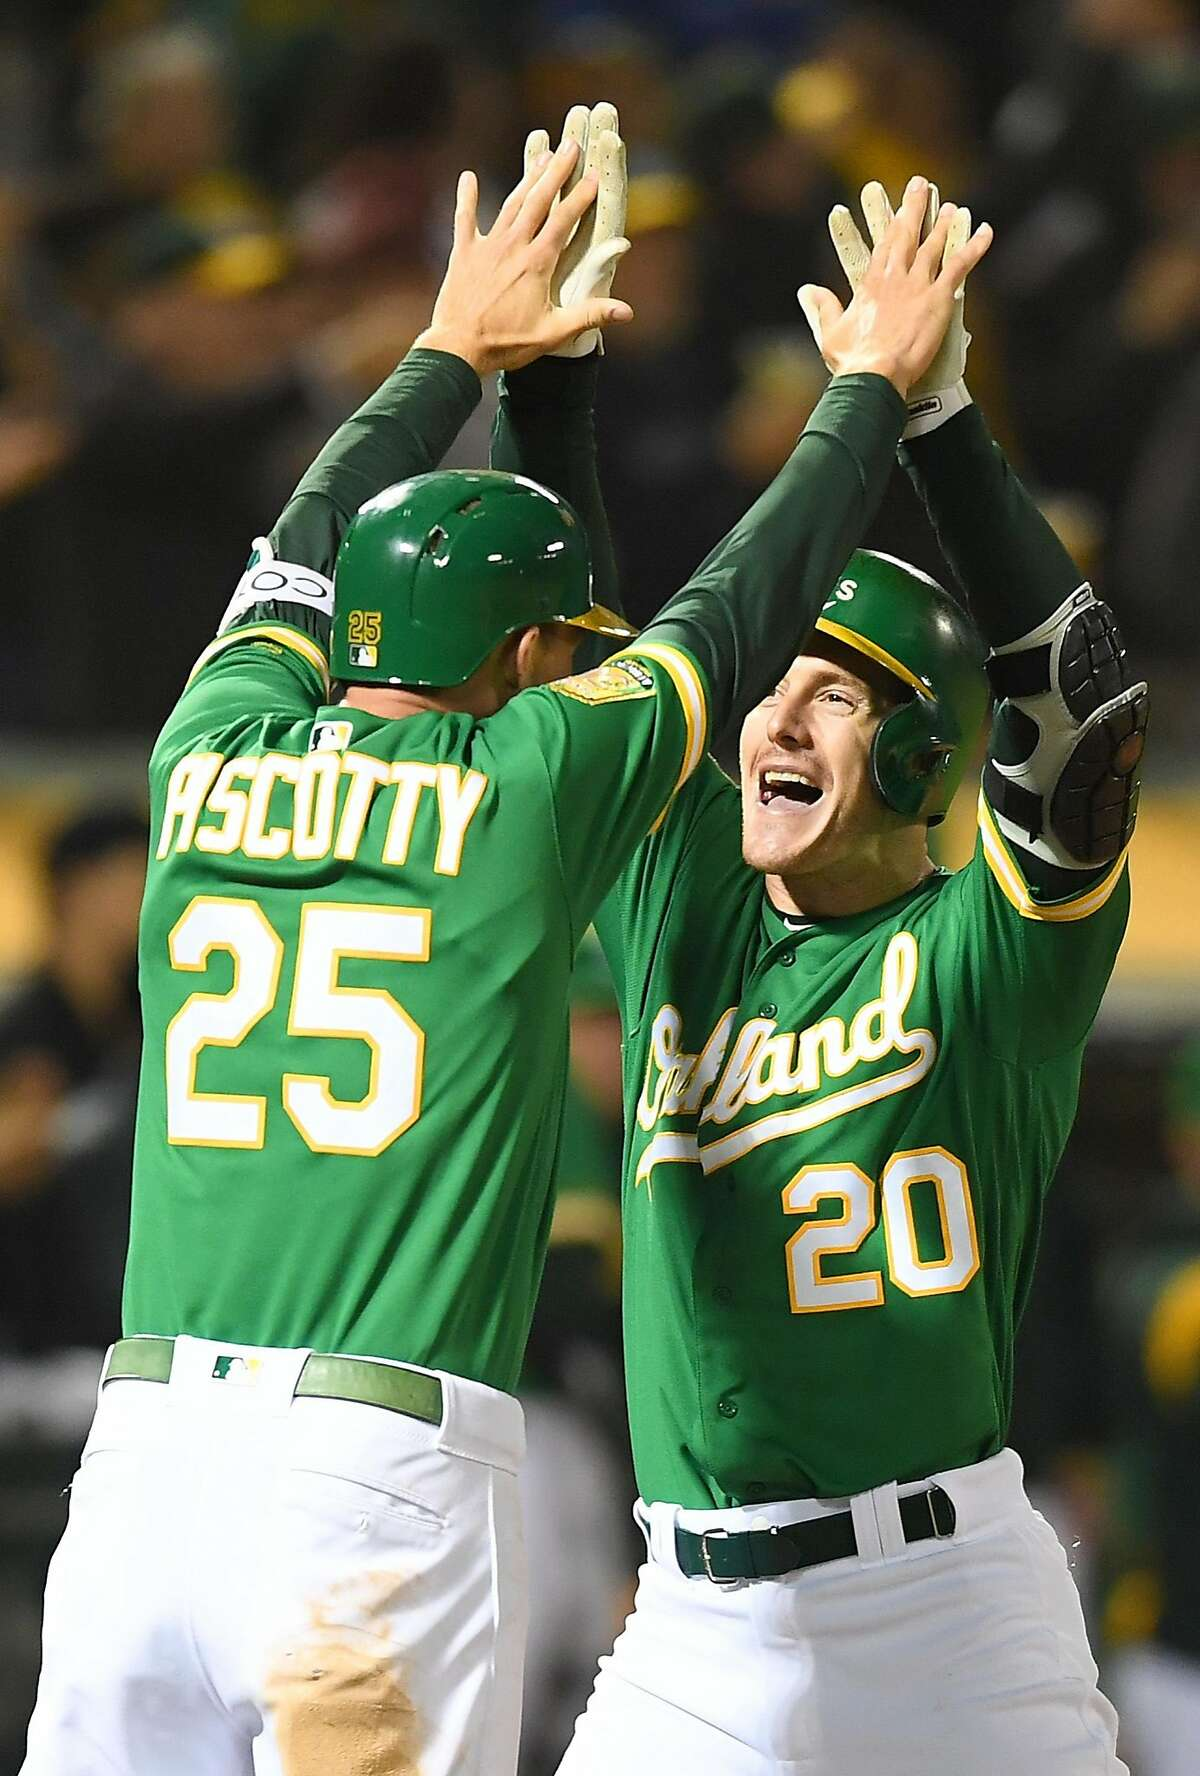 OAKLAND, CA - SEPTEMBER 21: Mark Canha #20 and Stephen Piscotty #25 of the Oakland Athletics celebrates after Canha hit a two-run home run against the Minnesota Twins in the bottom of the six inning at Oakland Alameda Coliseum on September 21, 2018 in Oakland, California. (Photo by Thearon W. Henderson/Getty Images)